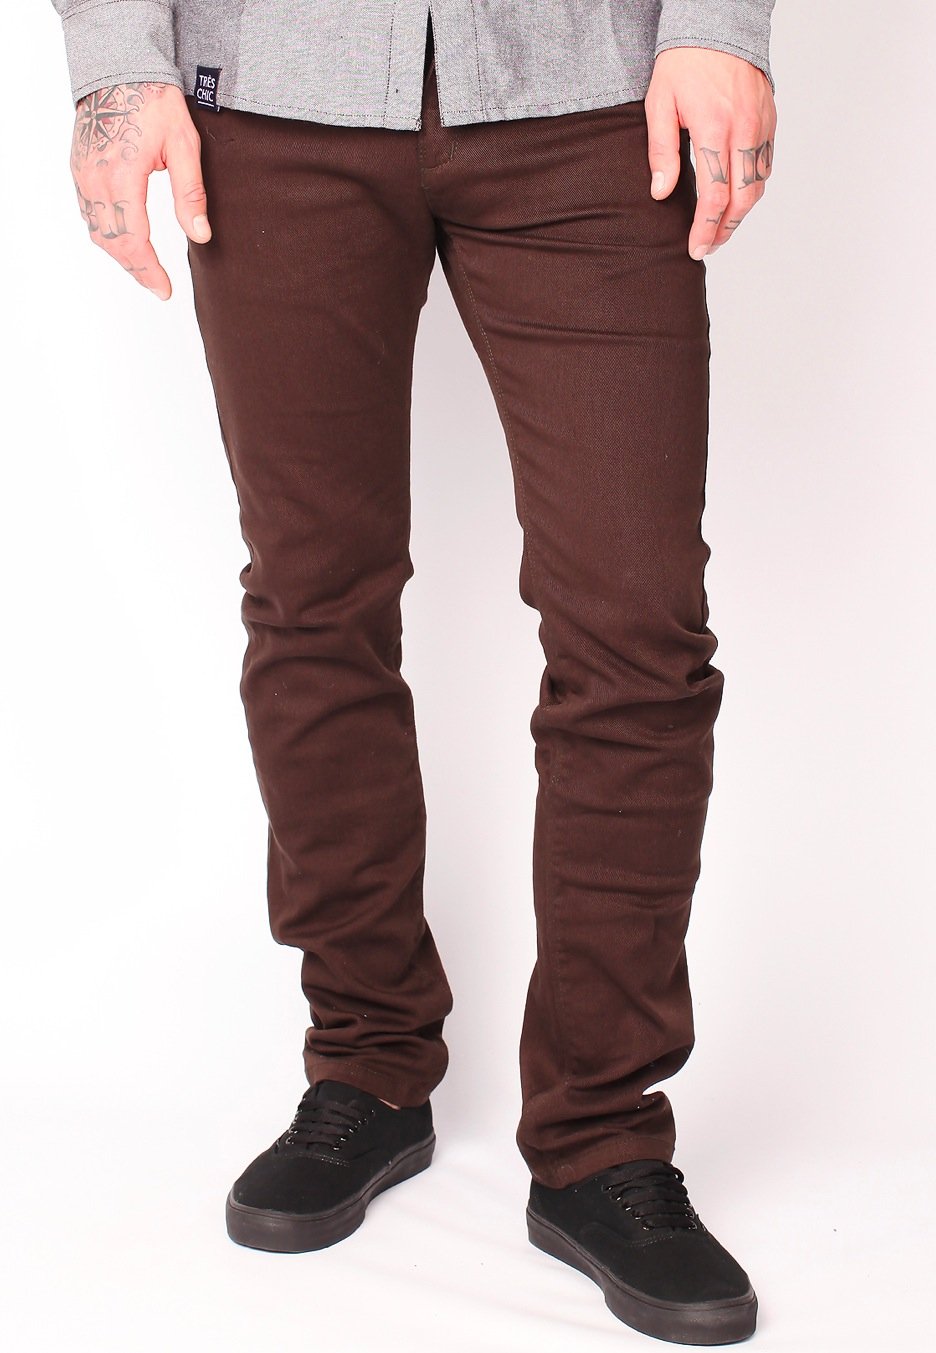 REELL - Skin Brown - Jeans - Impericon.com Worldwide